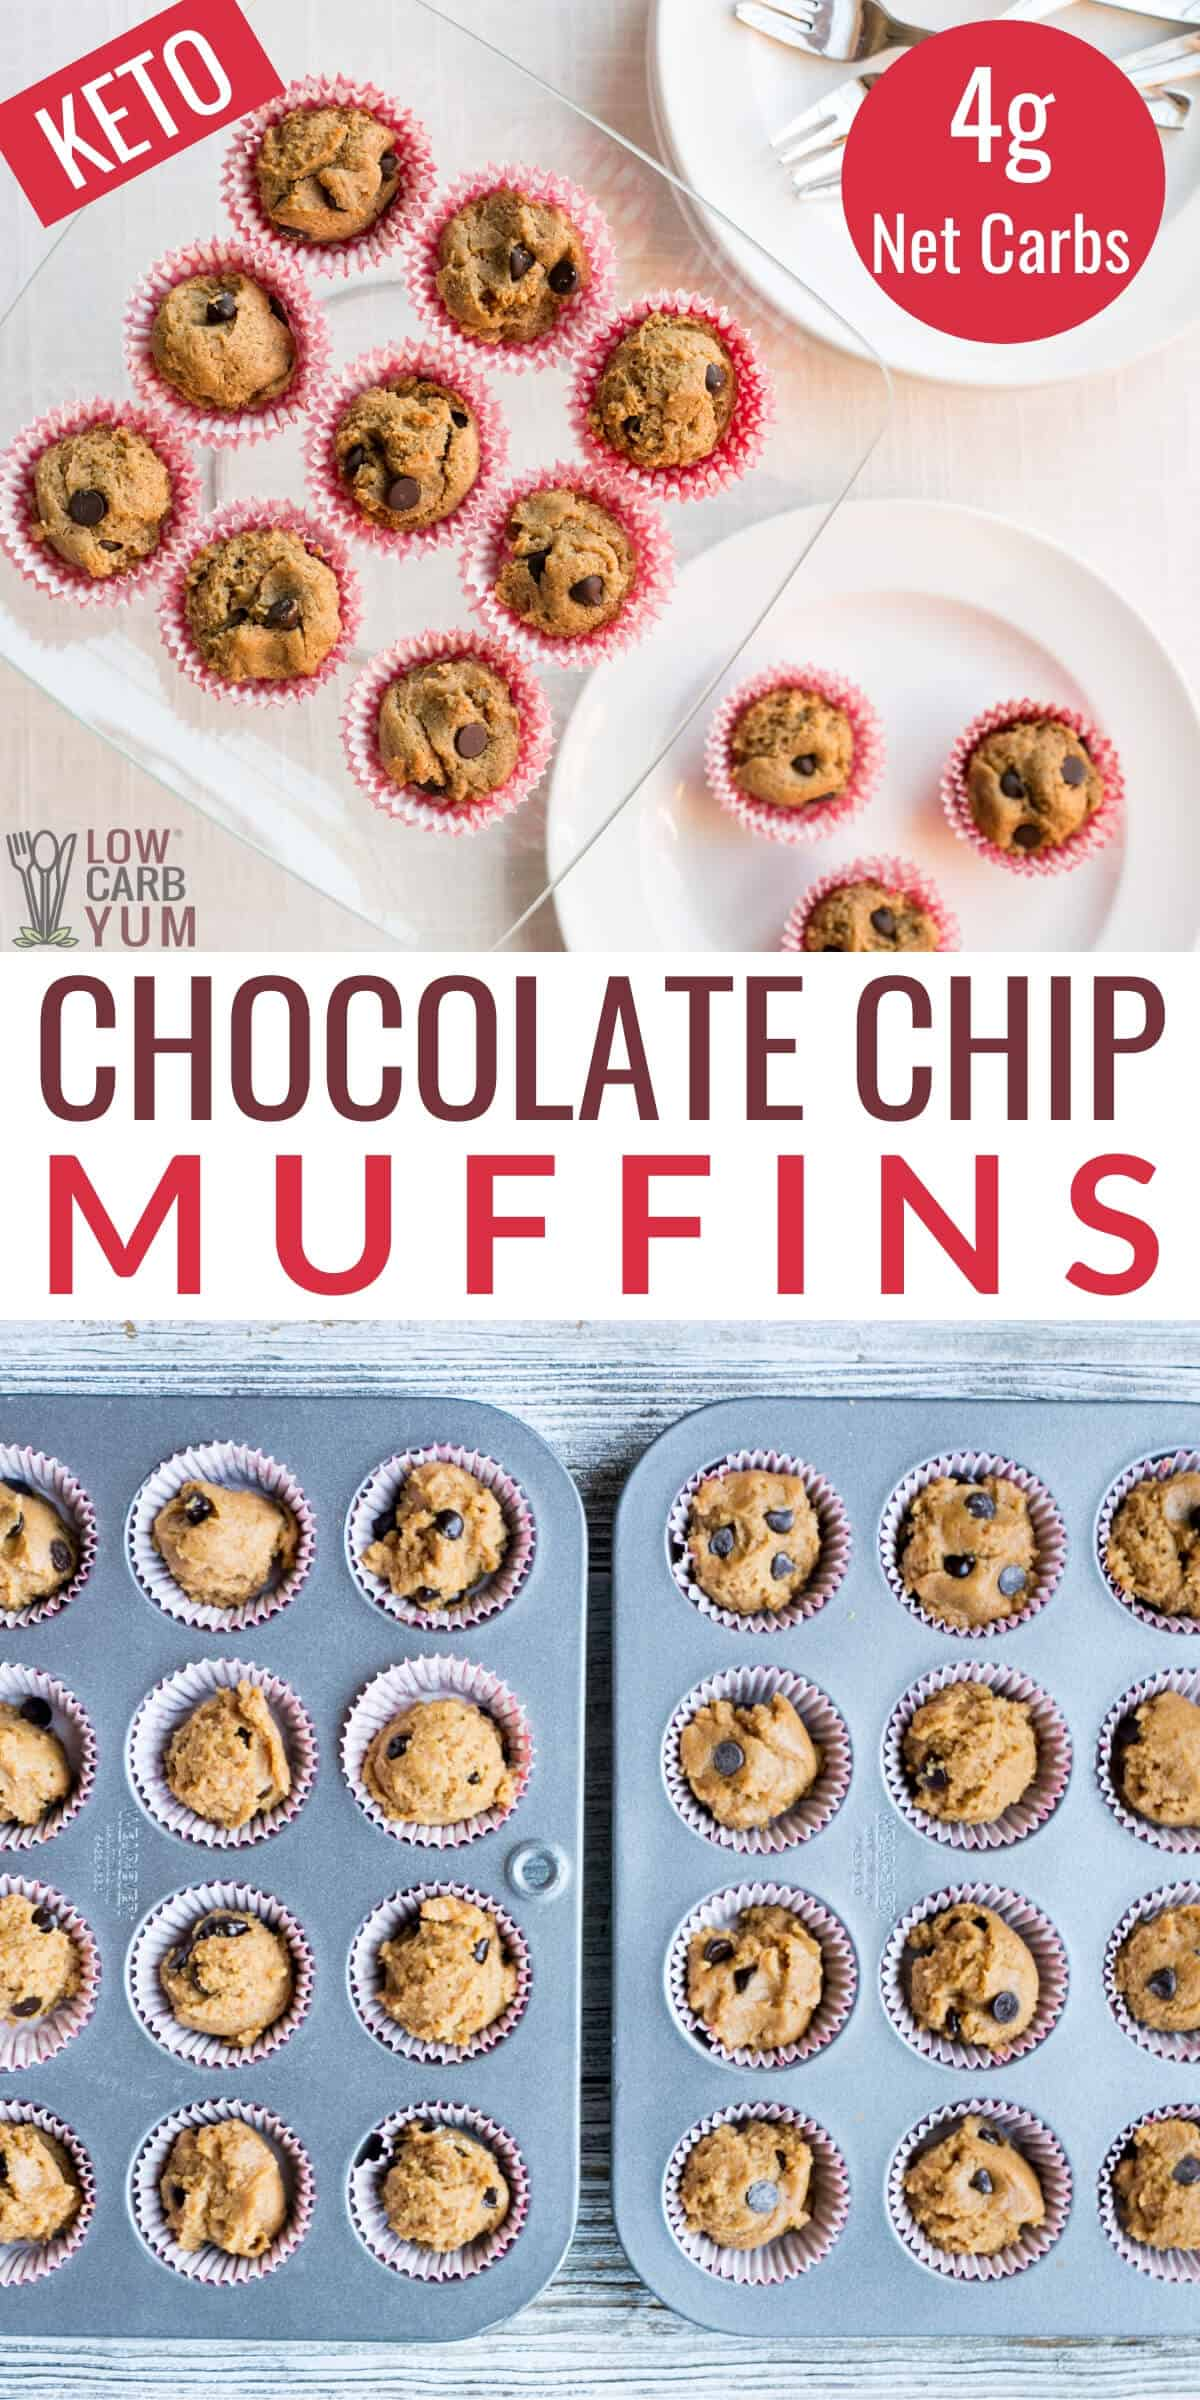 keto chocolate chip muffins recipe